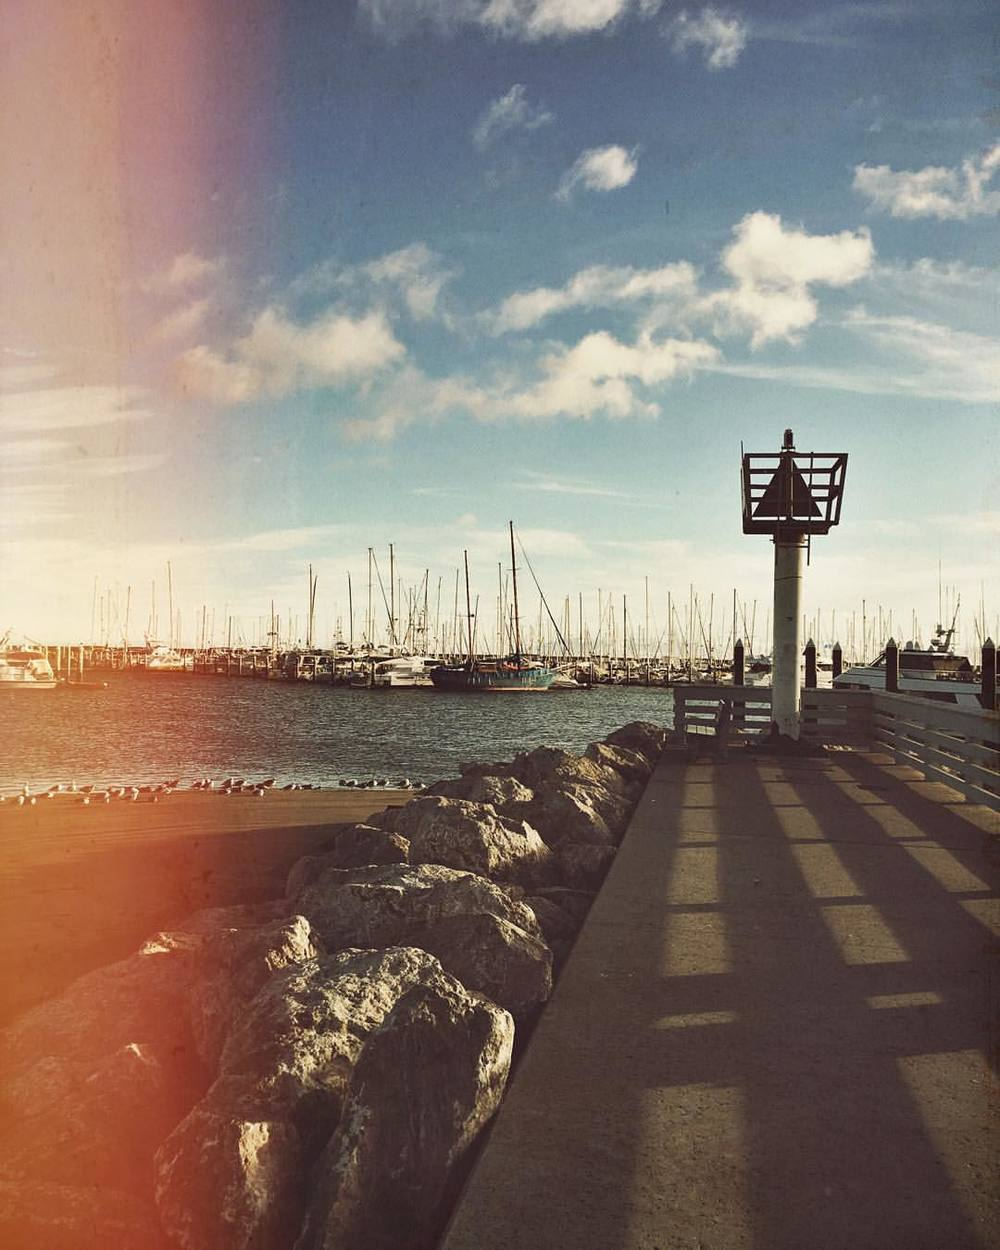 dreamscape-sometimes-i-have-a-little-fun-with-editing--dock-of-the-santabarbara-bay-dreamy-vacation-adventure-wanderlust-letsgo-californiadreaming-353365-stearnswharf_23907152831_o.jpg